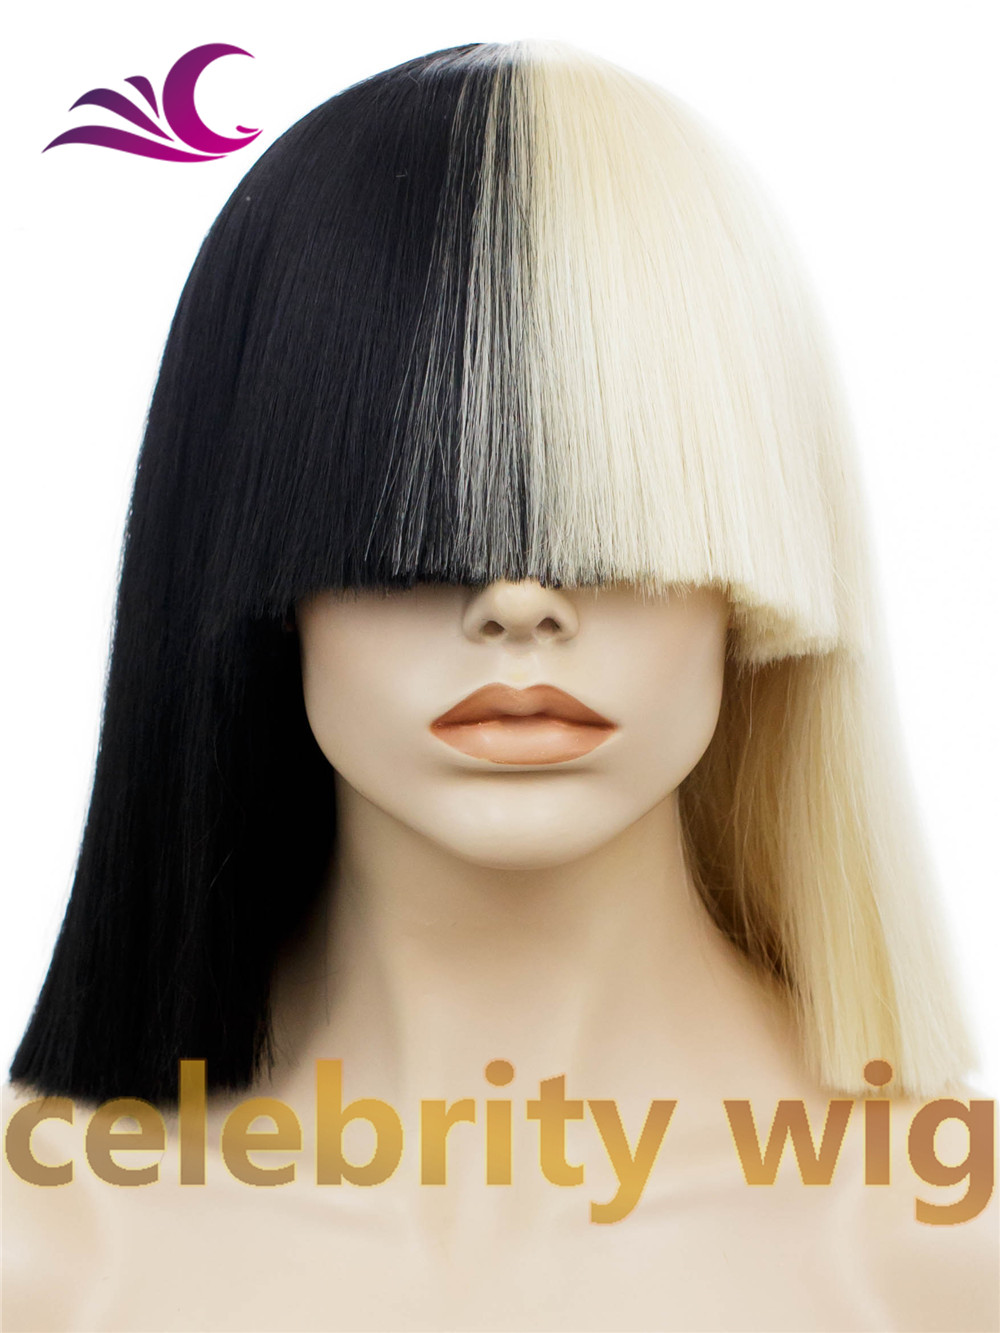 Cosplay &amp; drag queen Straight Synthetic No Lace Wig Two tone color white and black 16 hair celebrity wig for gift<br><br>Aliexpress